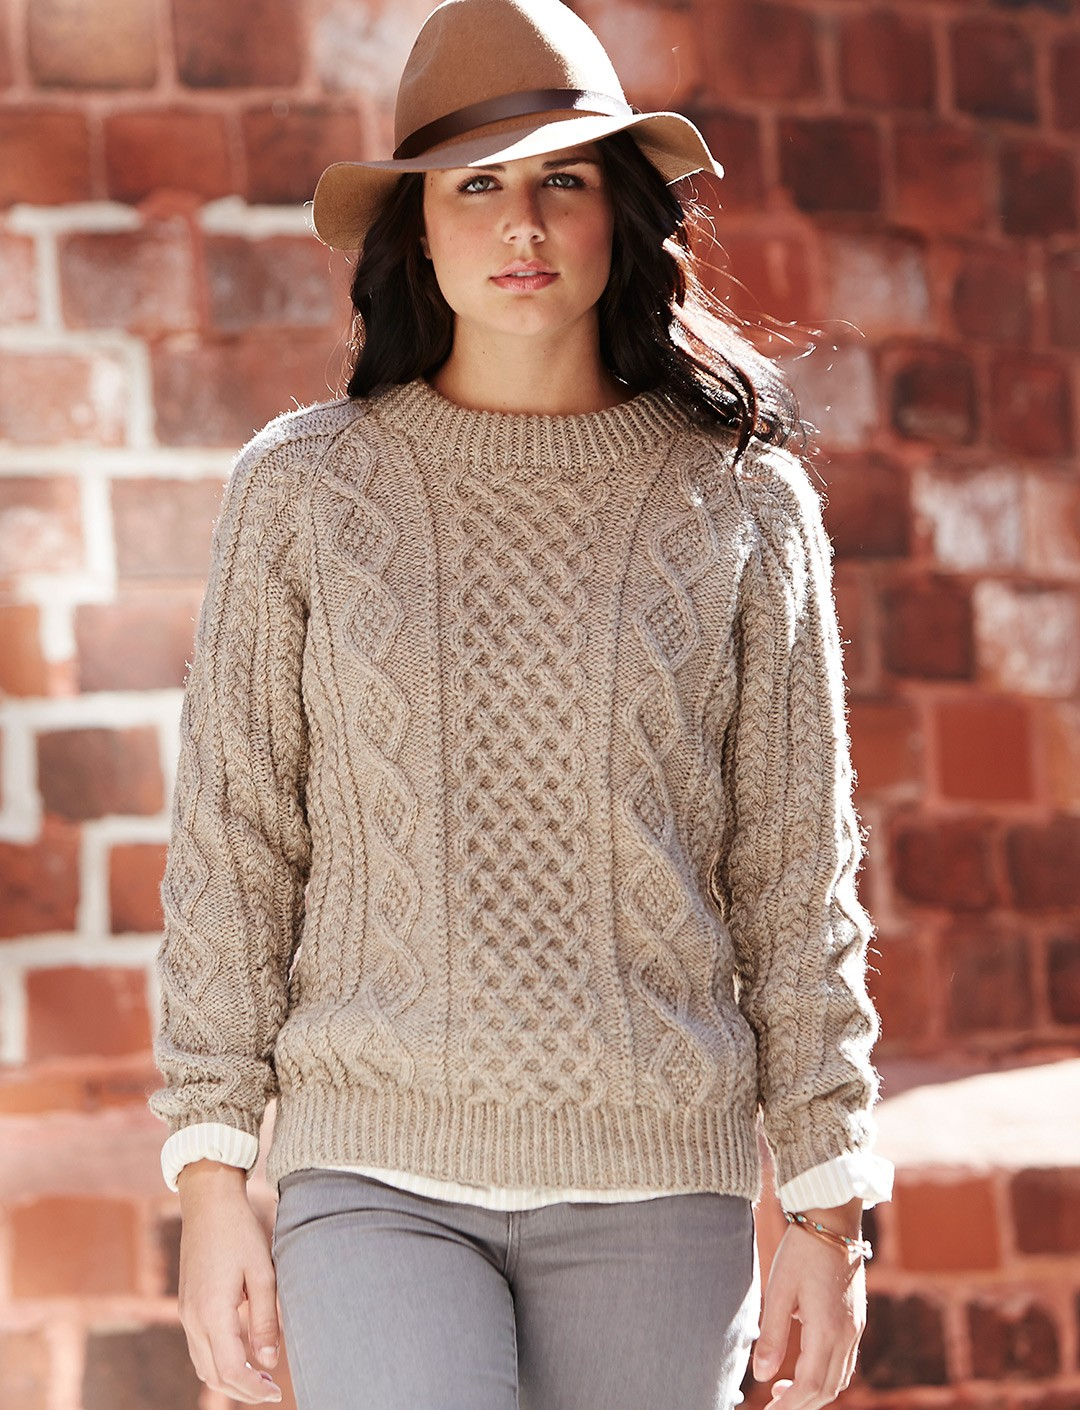 Amazing Knitting Patterns : Patons Honeycomb Aran, Knit Pattern Yarnspirations